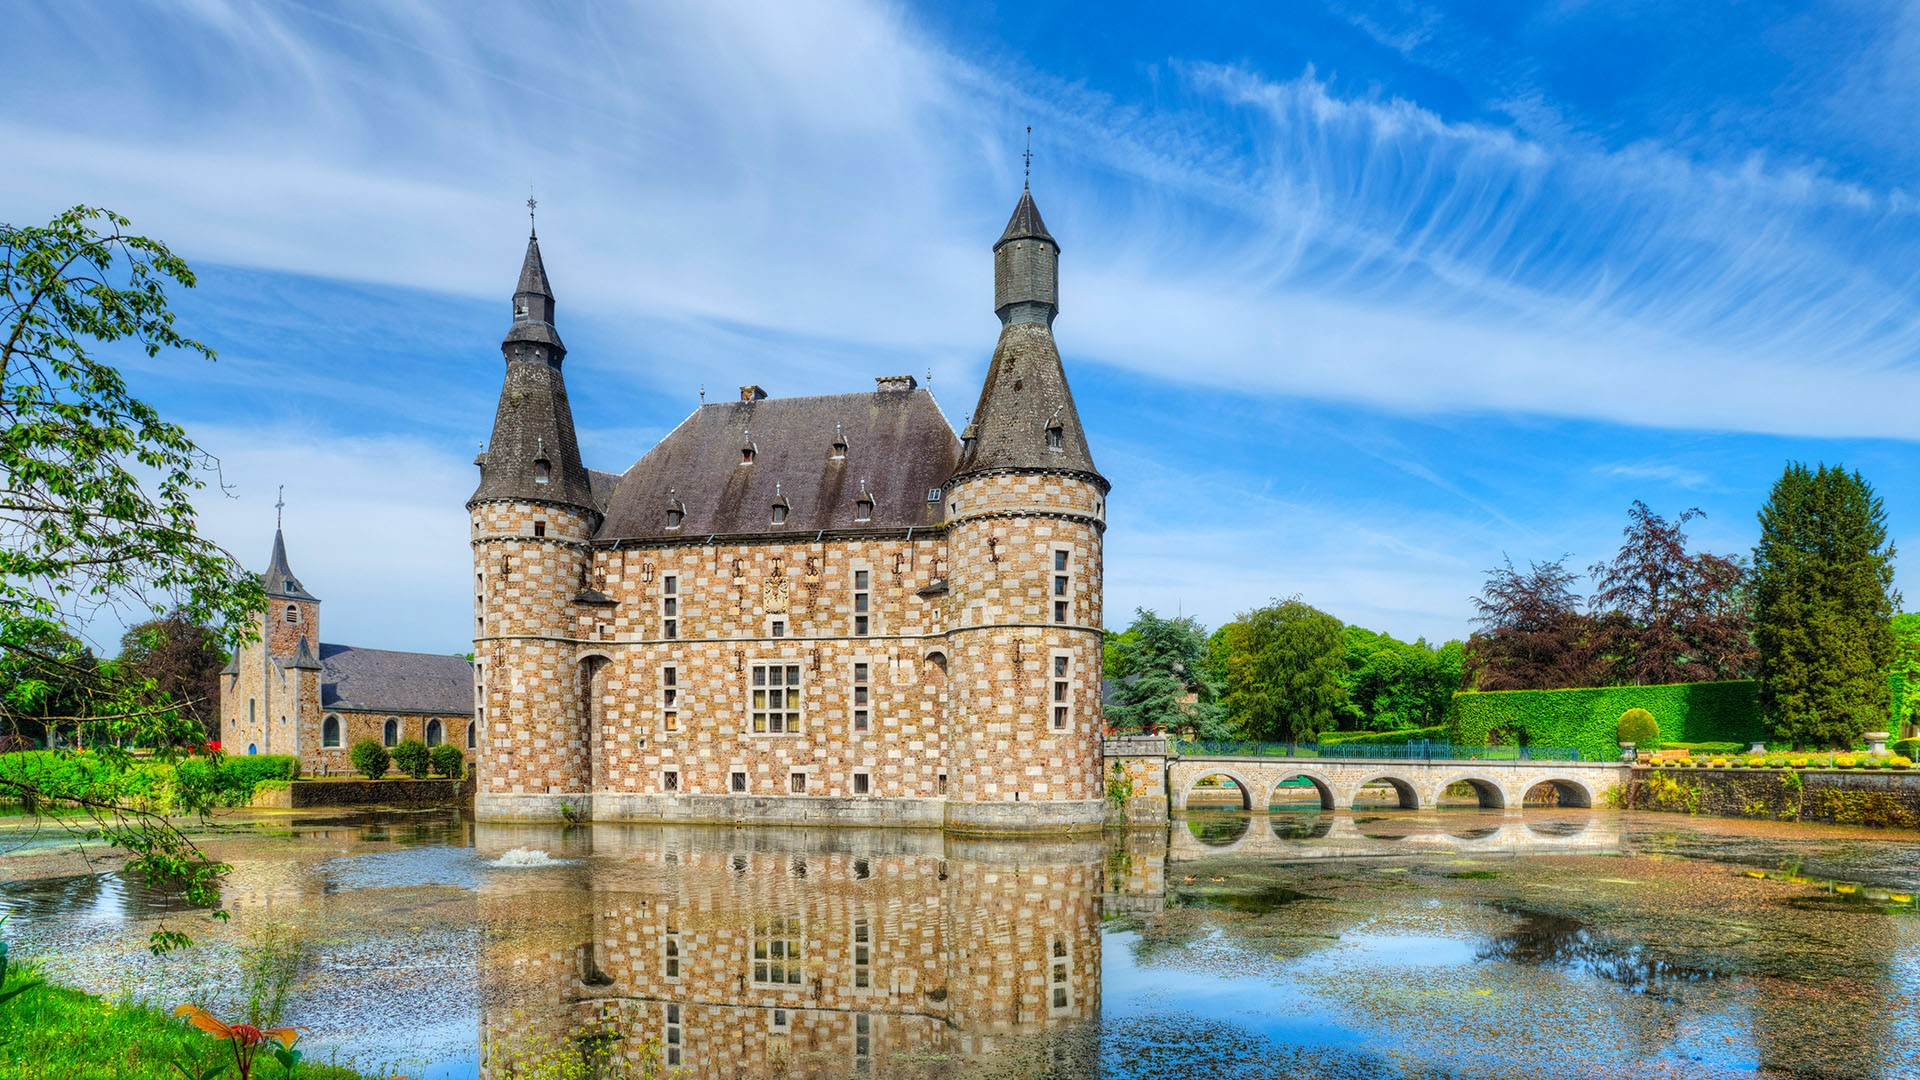 General 1920x1080 landscape castle architecture clouds sky trees Moated Jehay Castle Belgium